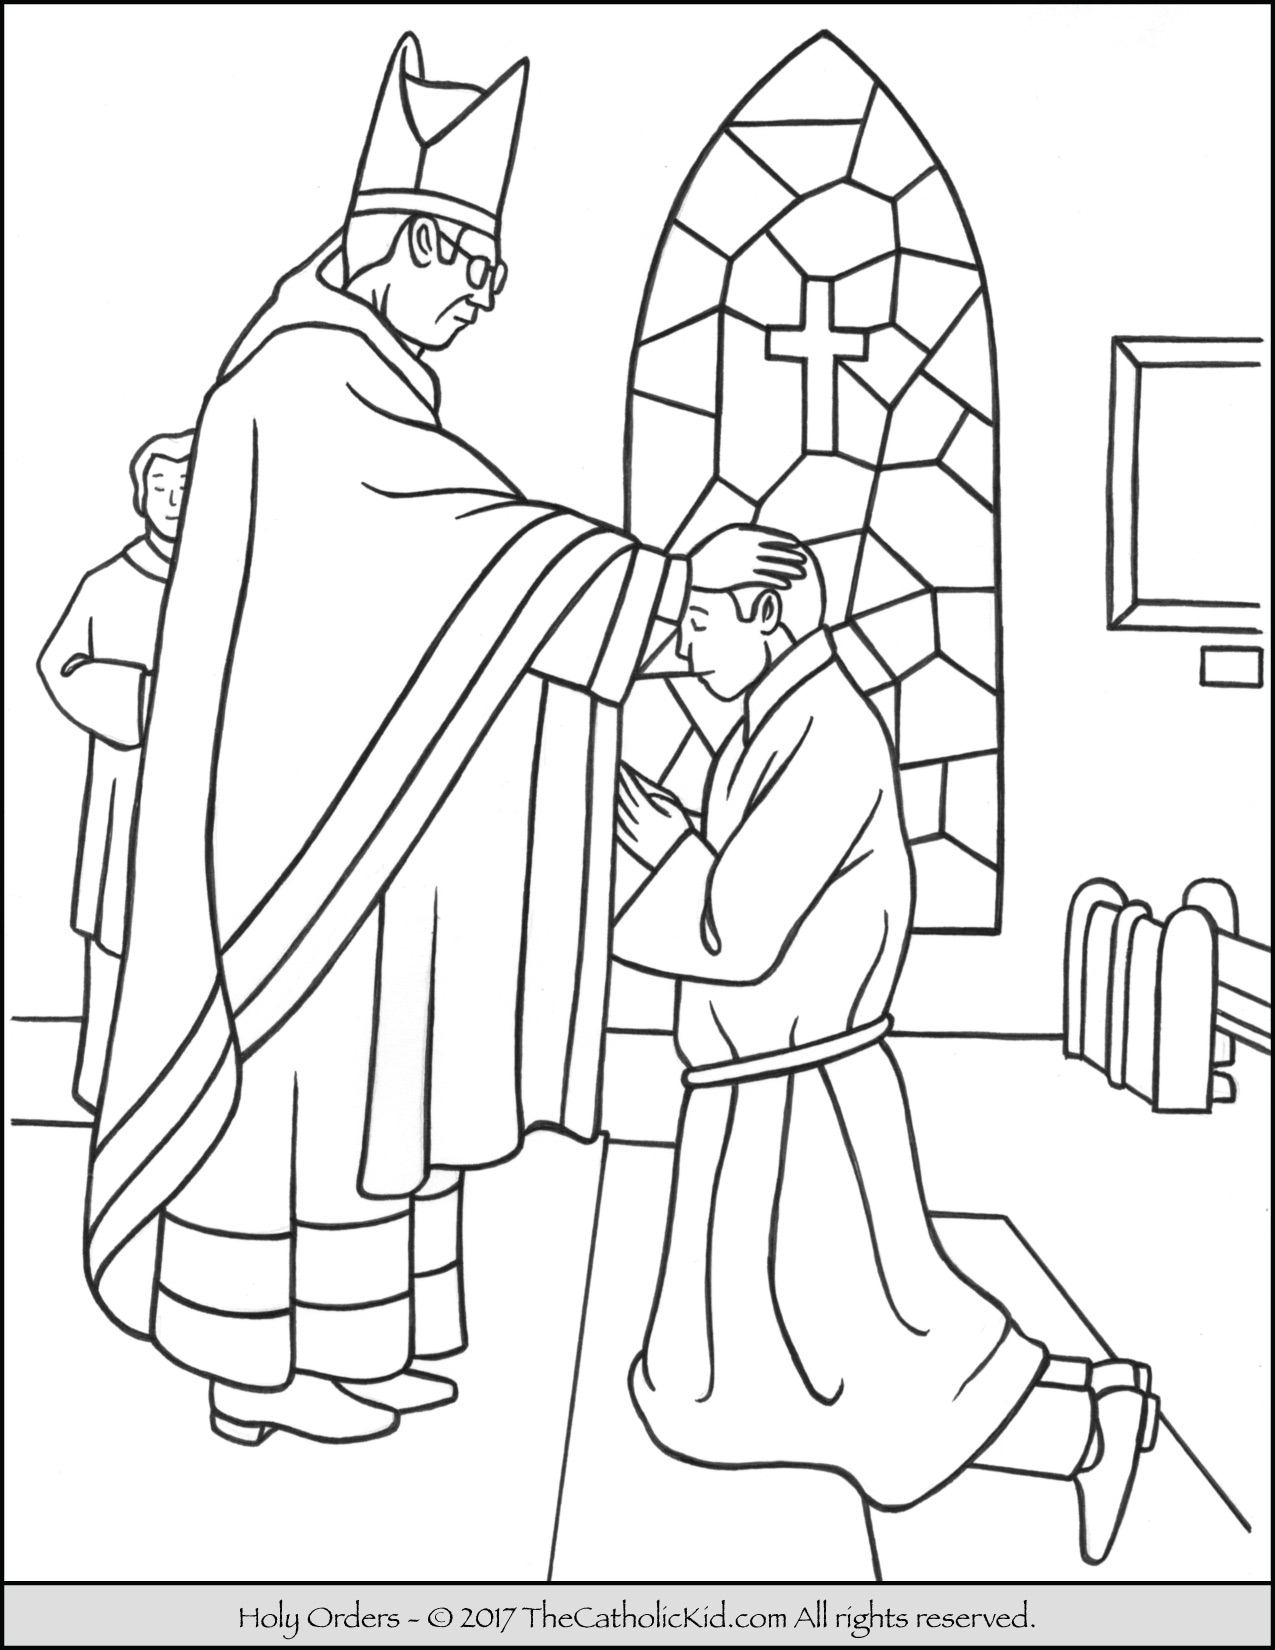 24 Jesus On the Cross Coloring Pages Printable | FREE COLORING PAGES ...